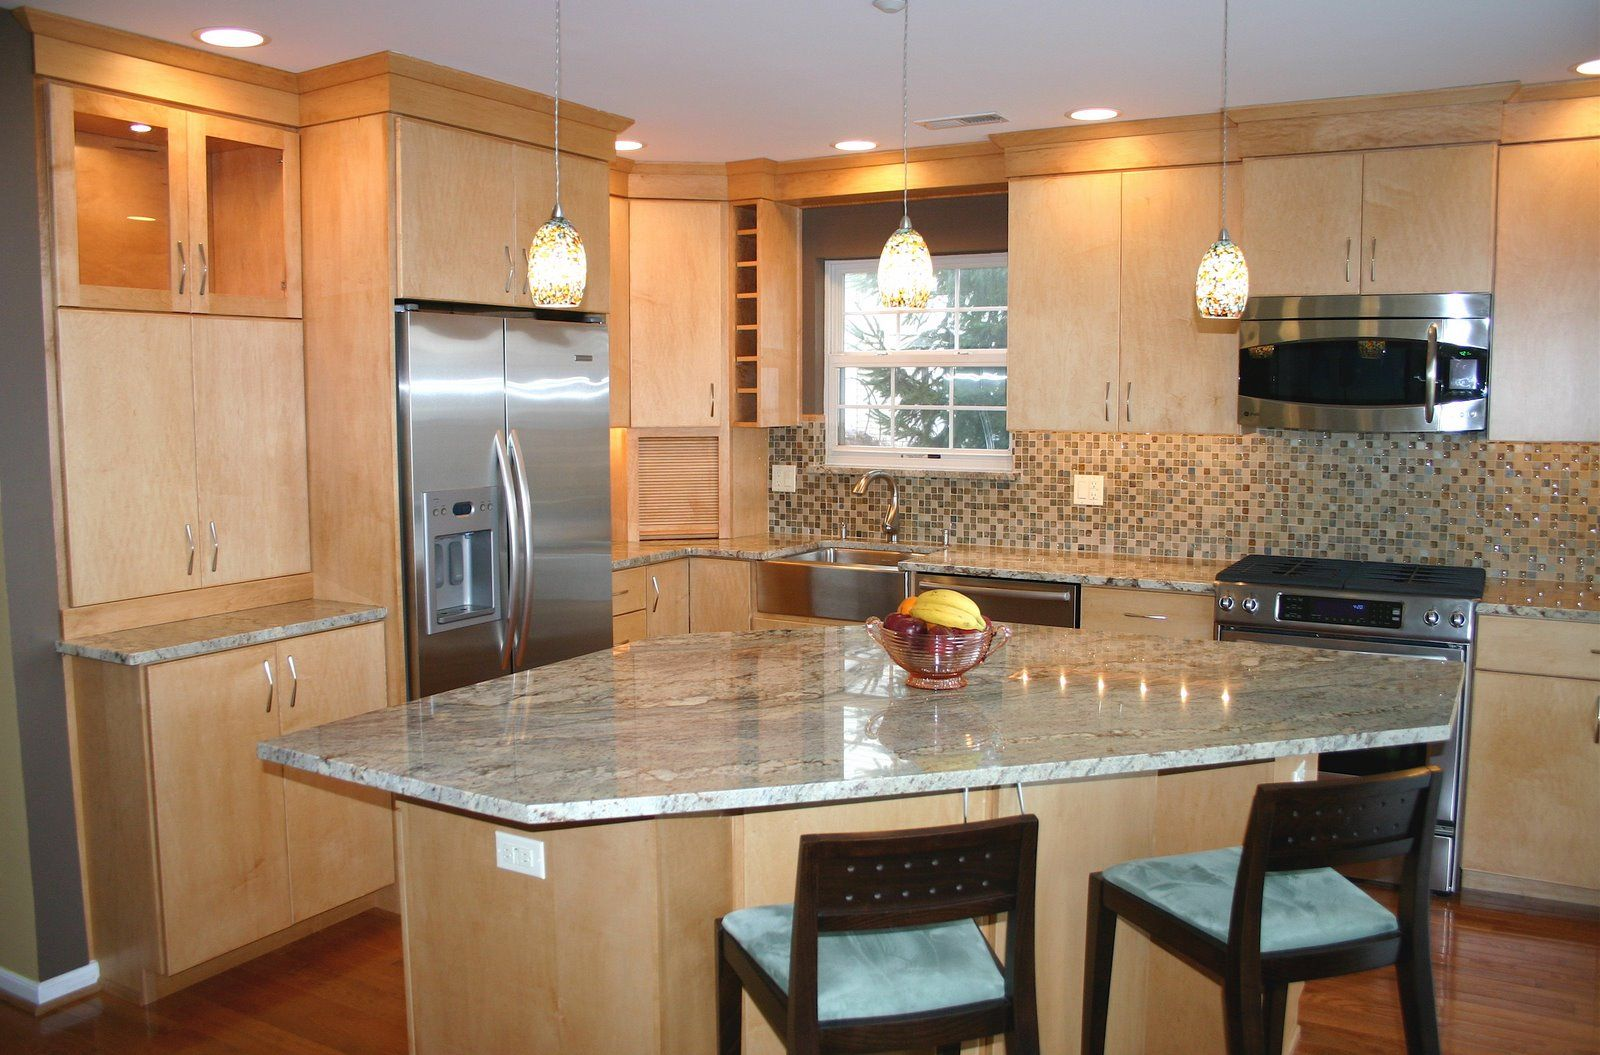 Kitchen Remodel Showroom Plans Long Kitchens Design  Extraordinary Kitchen Design Showrooms .